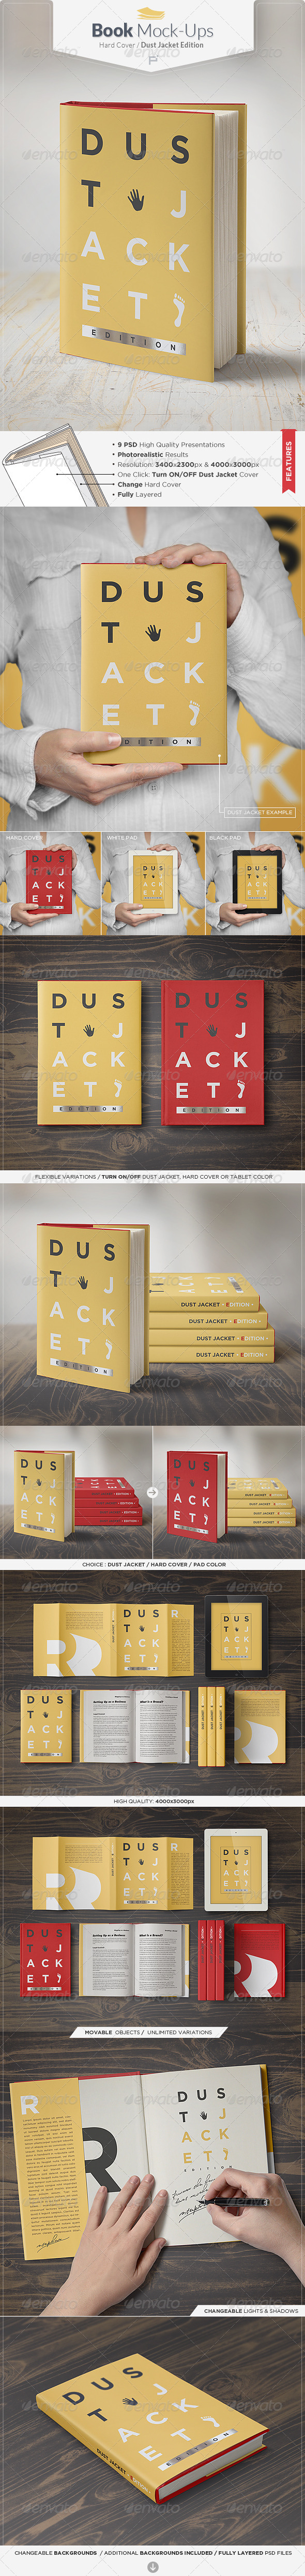 Book Mock-Up / Dust Jacket Edition Free Download #1 free download Book Mock-Up / Dust Jacket Edition Free Download #1 nulled Book Mock-Up / Dust Jacket Edition Free Download #1